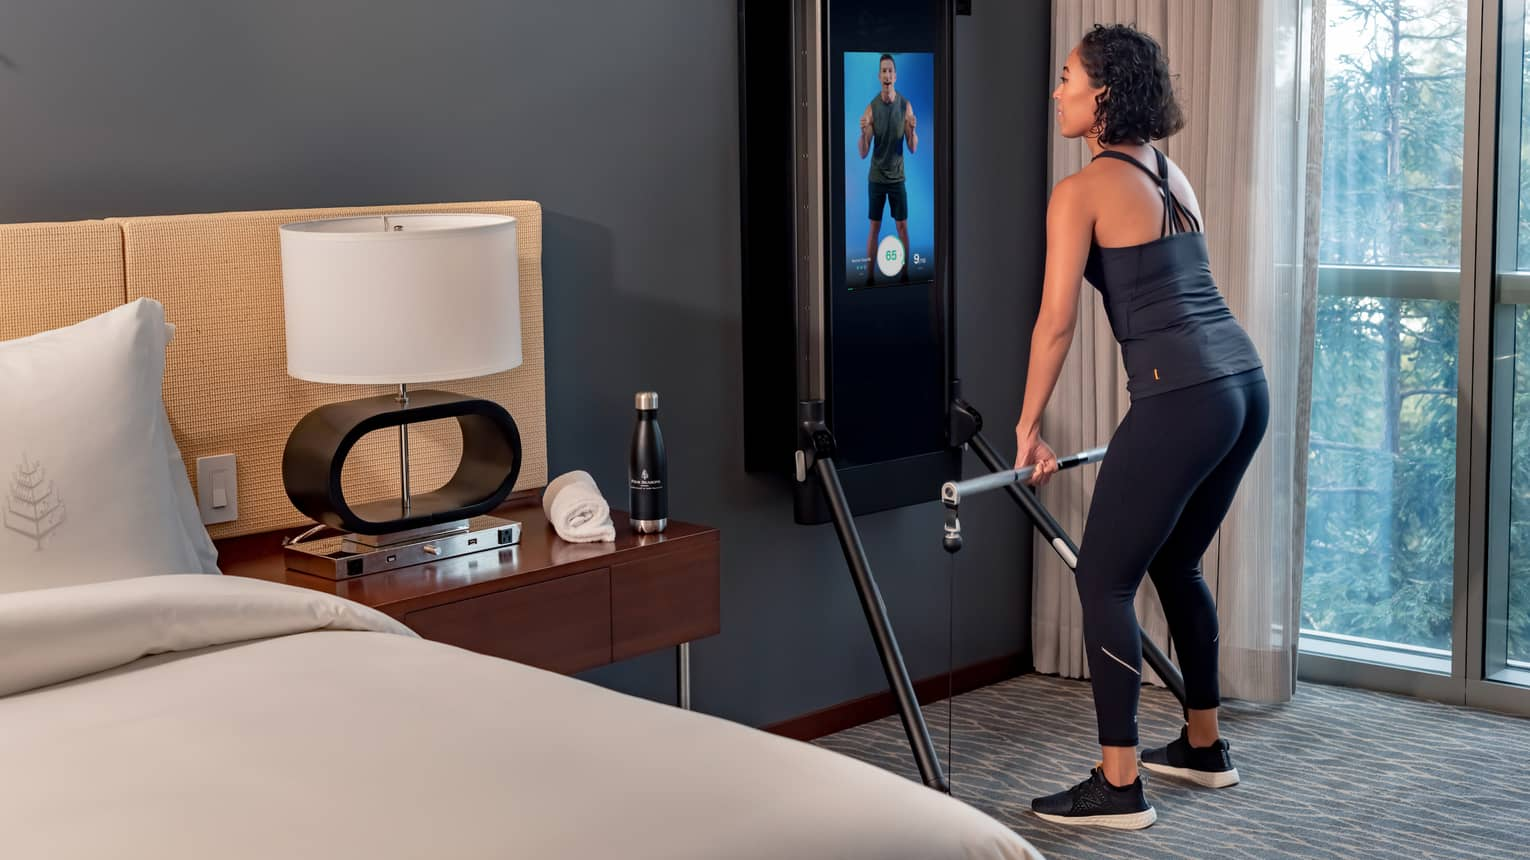 Woman exercises in front of an instructor on a screen in a Tonal technology-equipped guest room